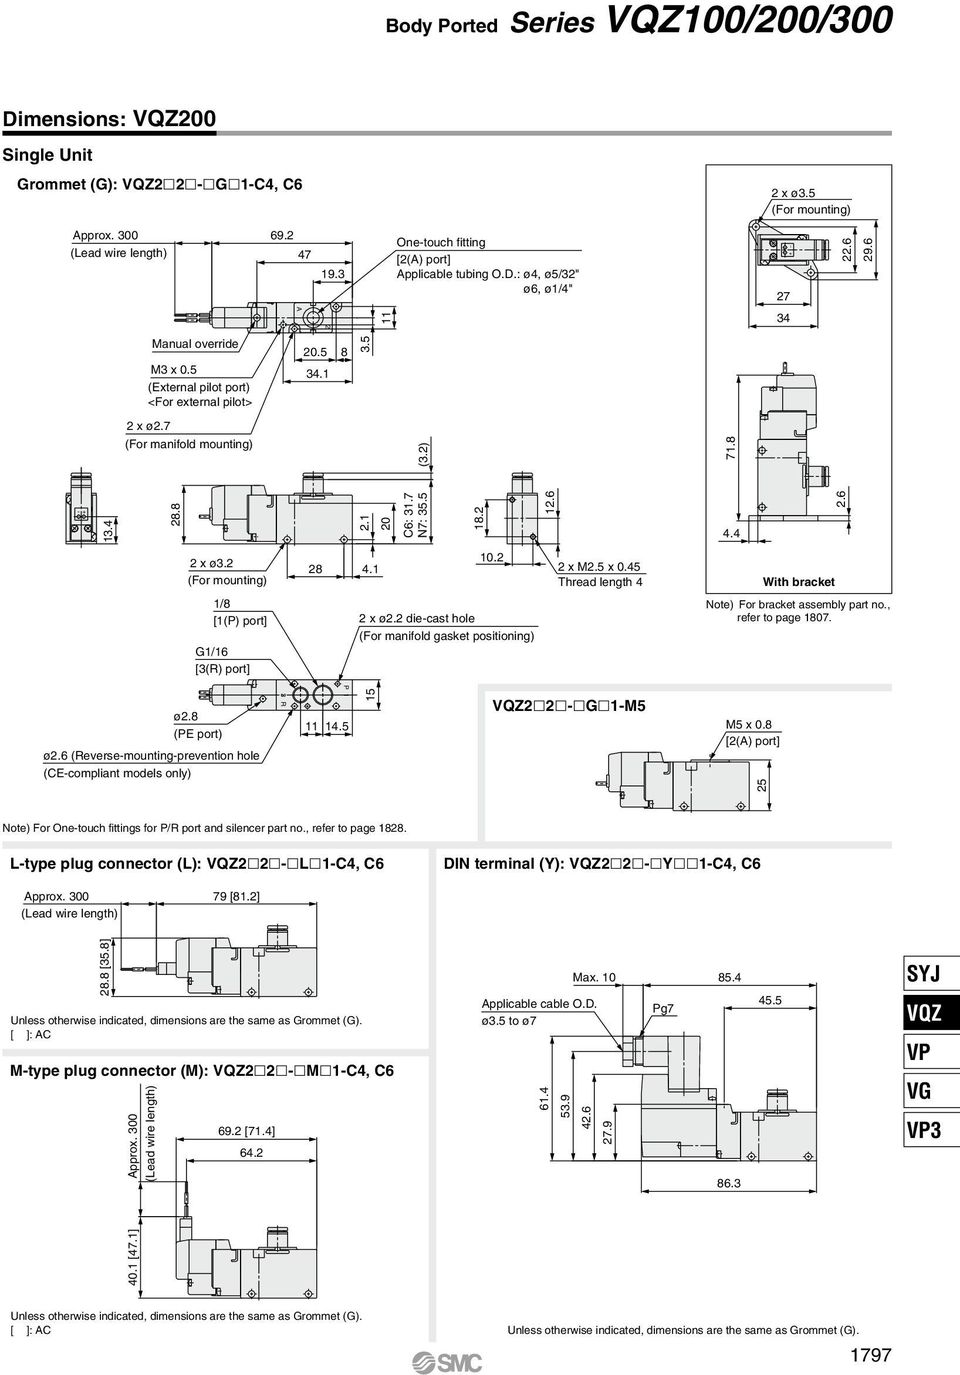 Thread length With bracket /8 [(P) port] G/ [(R) port] x ø. die-cast hole (For manifold gasket positioning) Note) For bracket assembly part no., refer to page 807. ø.8 (PE port) ø.